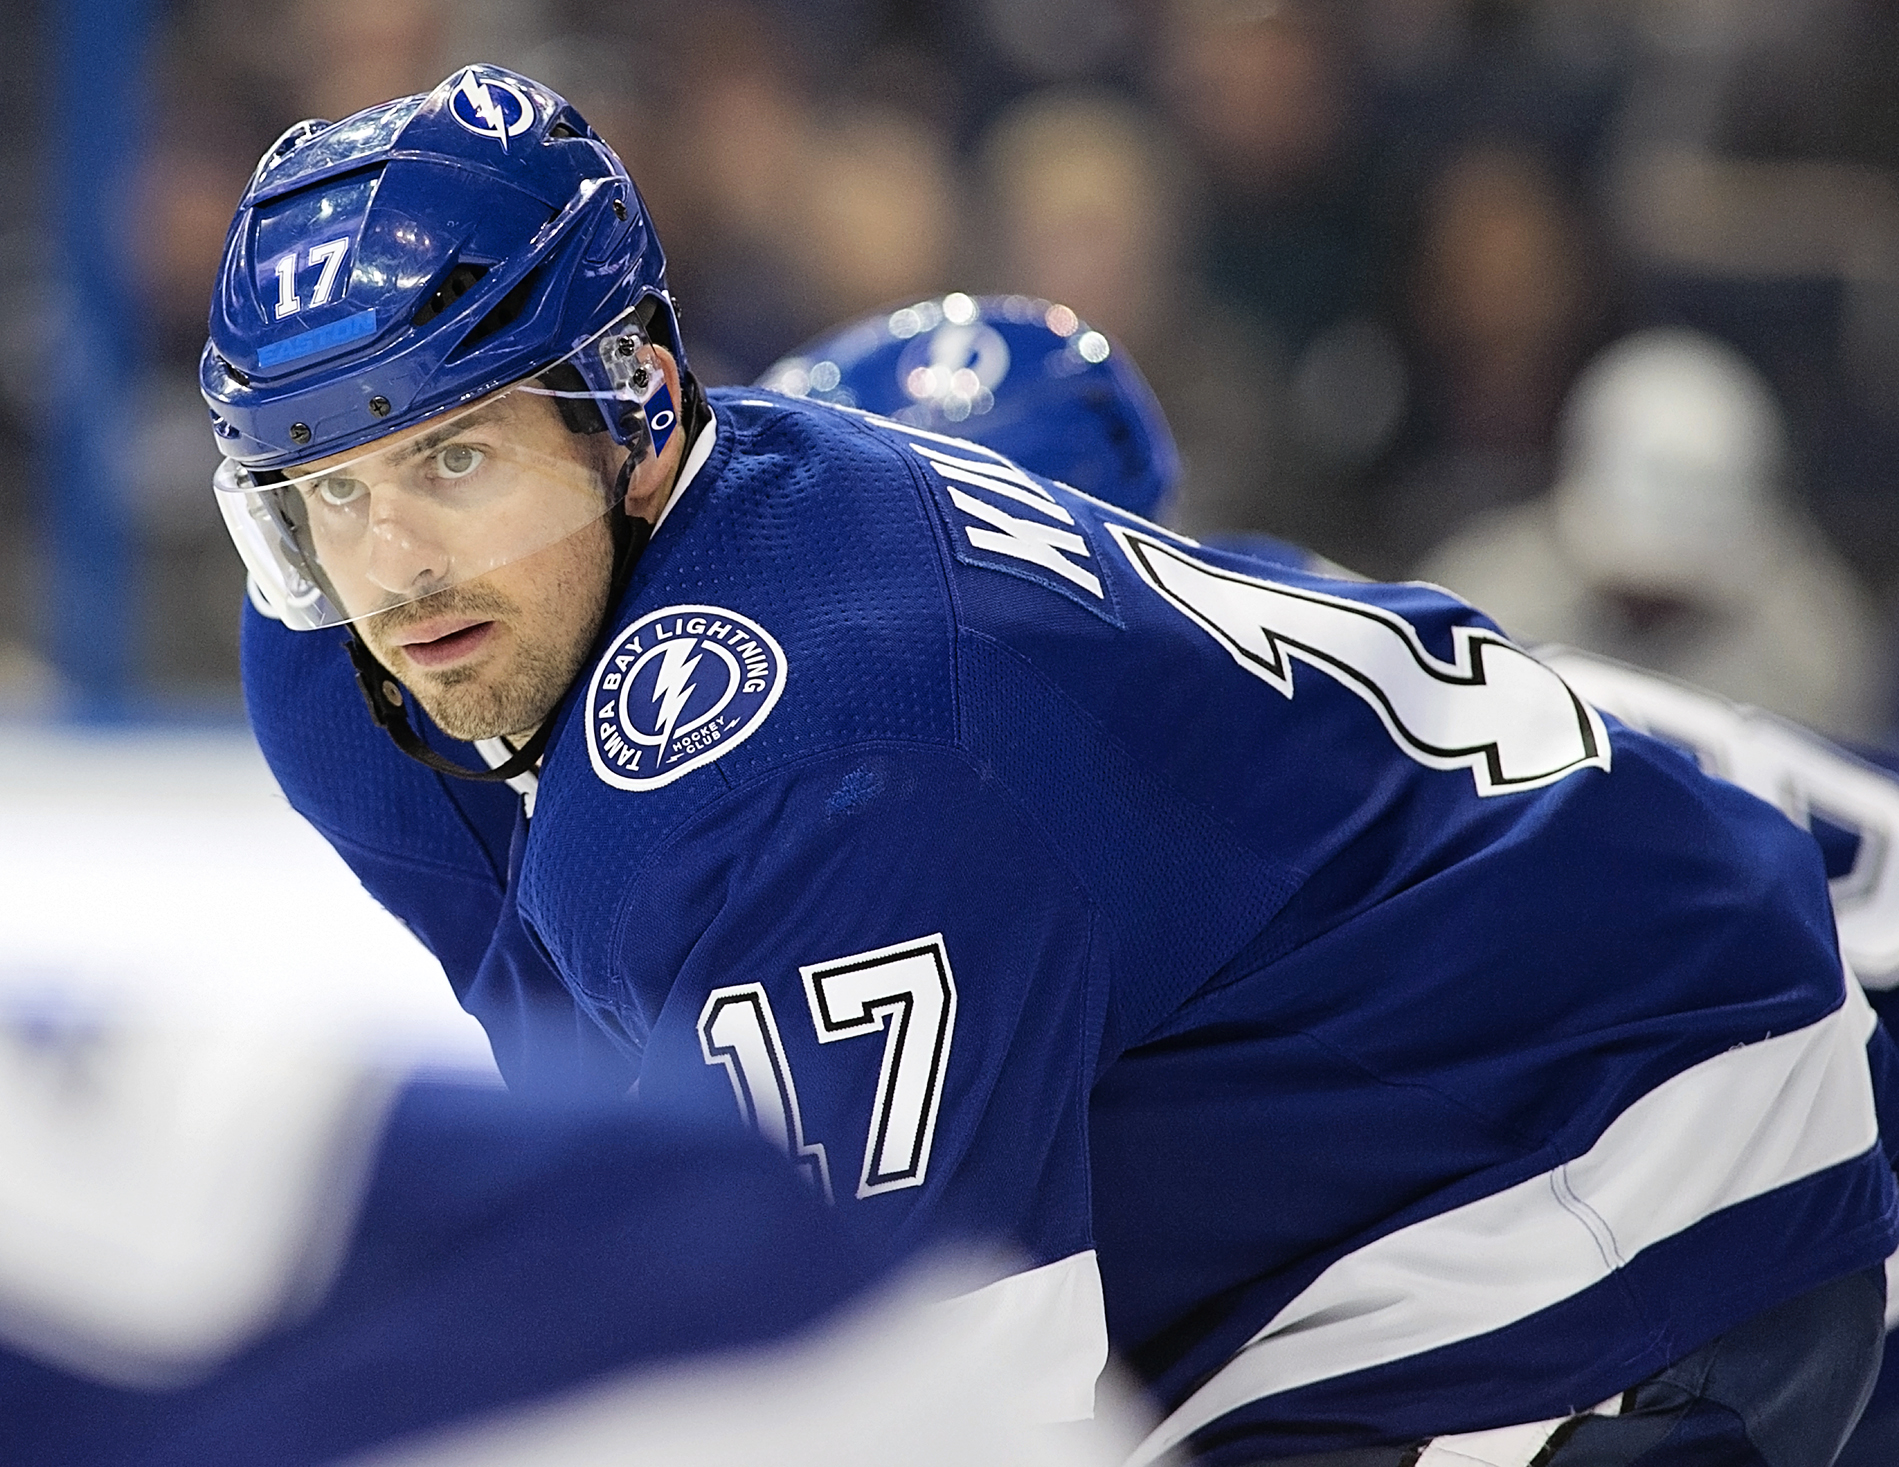 Killorn scored the winning goal in the Lighting's comeback./CARMEN MANDATO